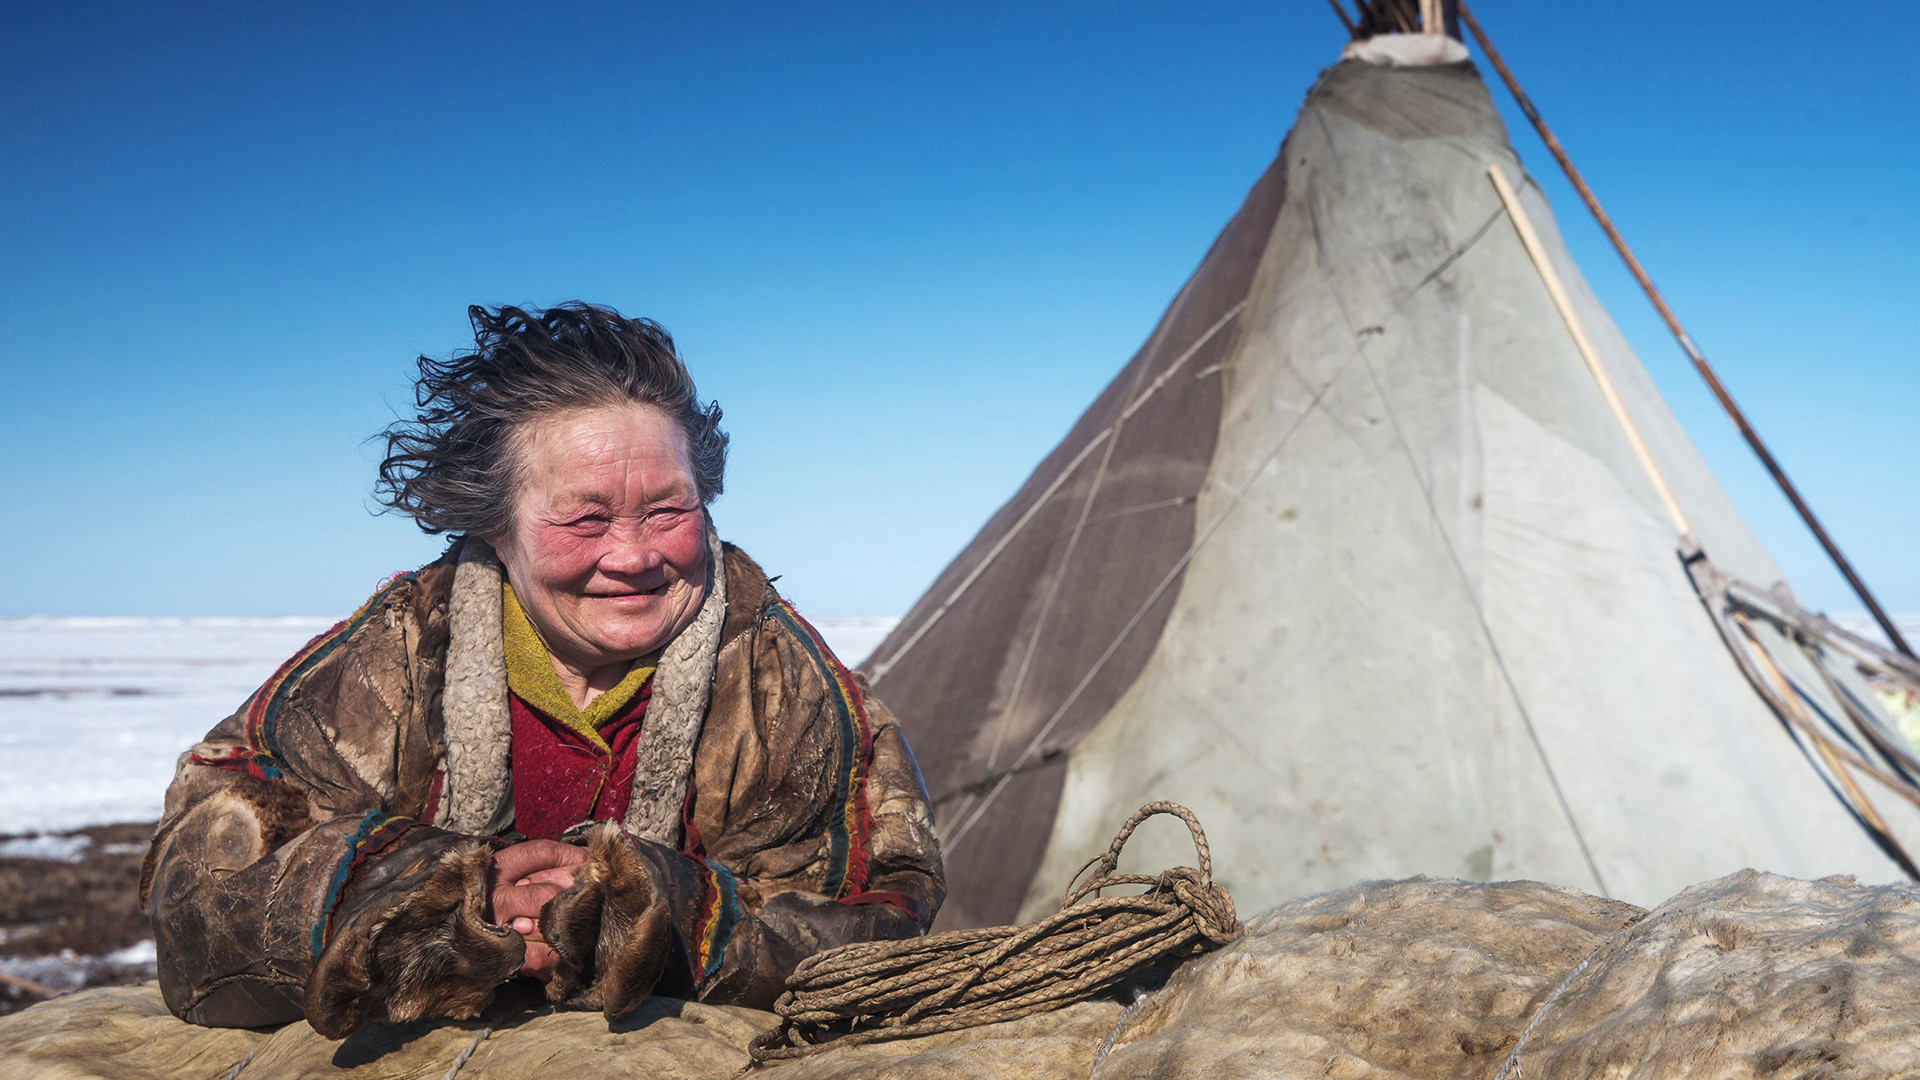 A reindeer herder women looks on at a nomad camp at 150 km from the town of Salekhard, Yamalo-Nenets Autonomous Okrug, May 2, 2016.